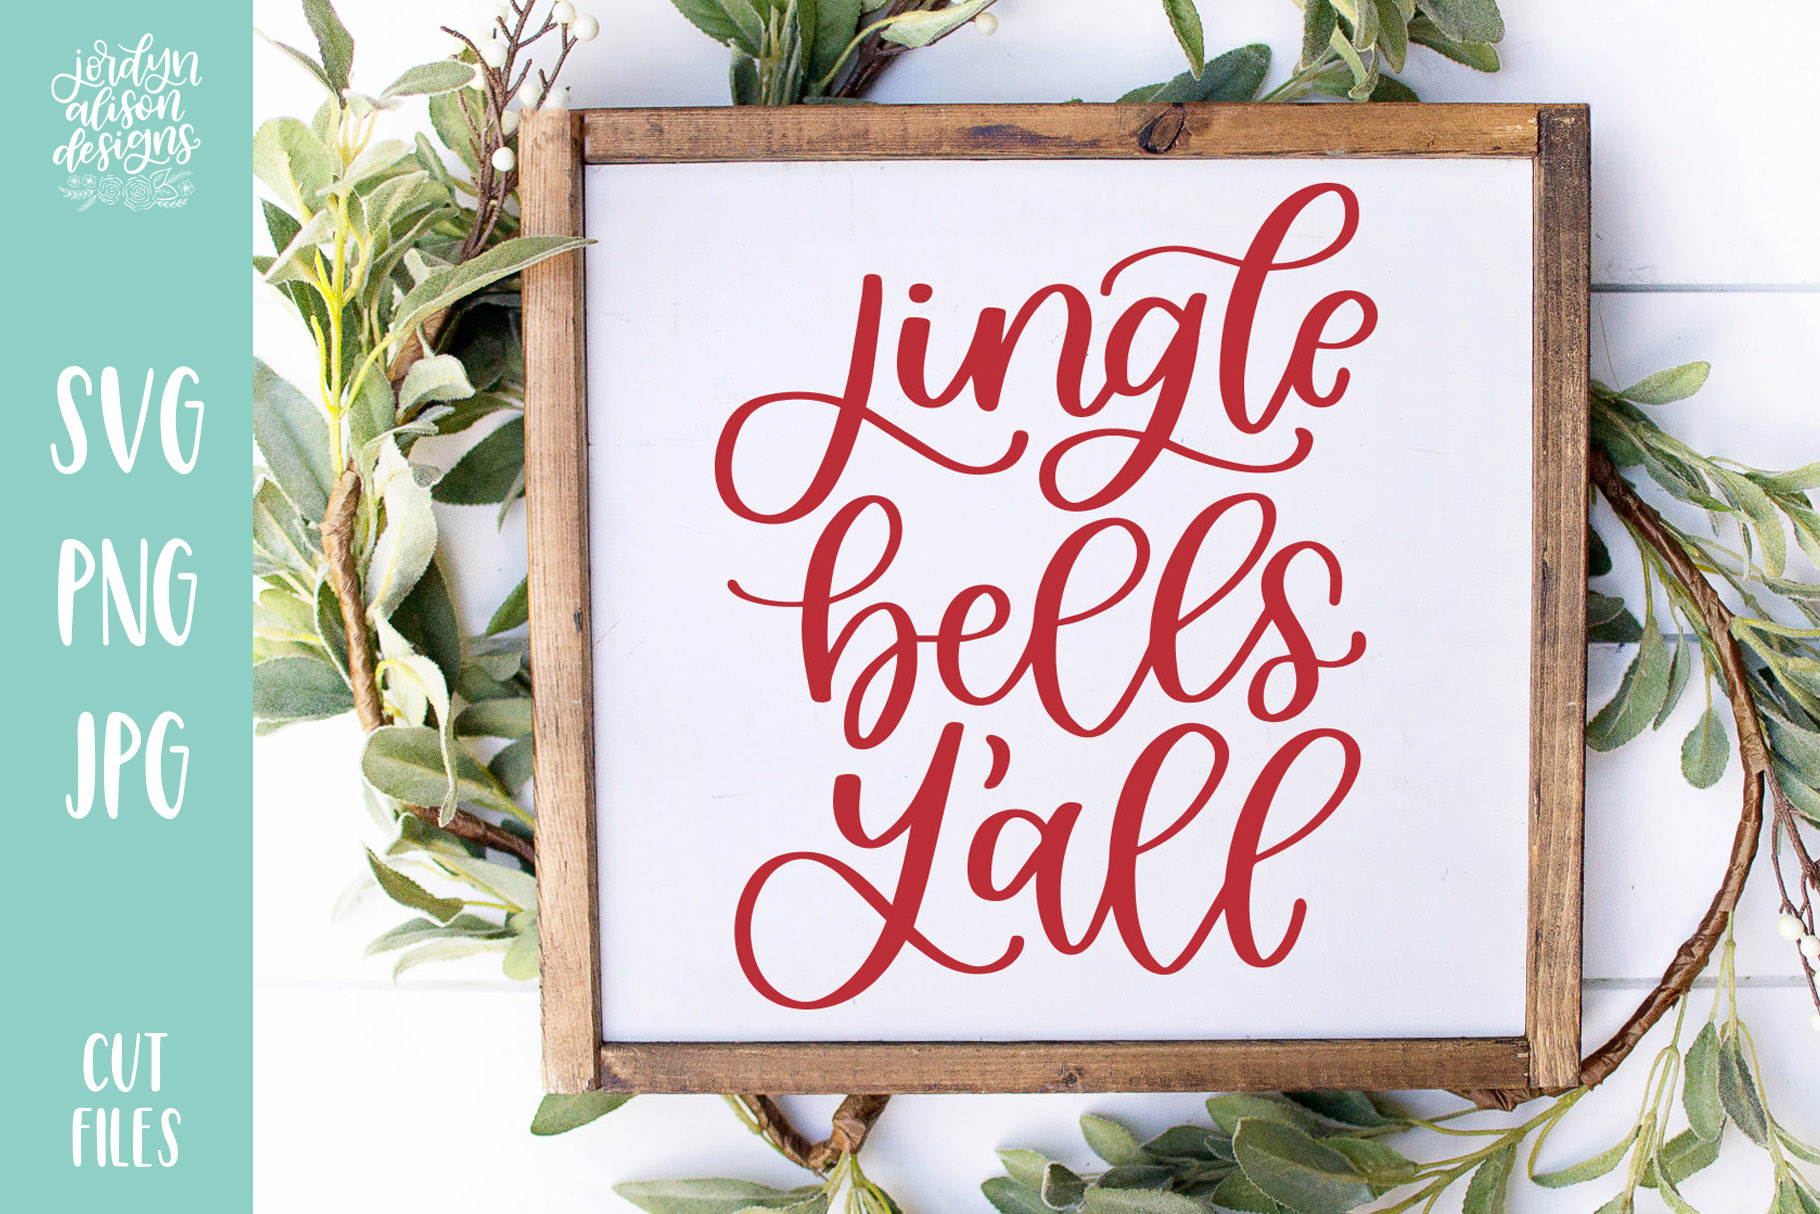 Download Free Jingle Bells Y All Cut File Graphic By Jordynalisondesigns for Cricut Explore, Silhouette and other cutting machines.